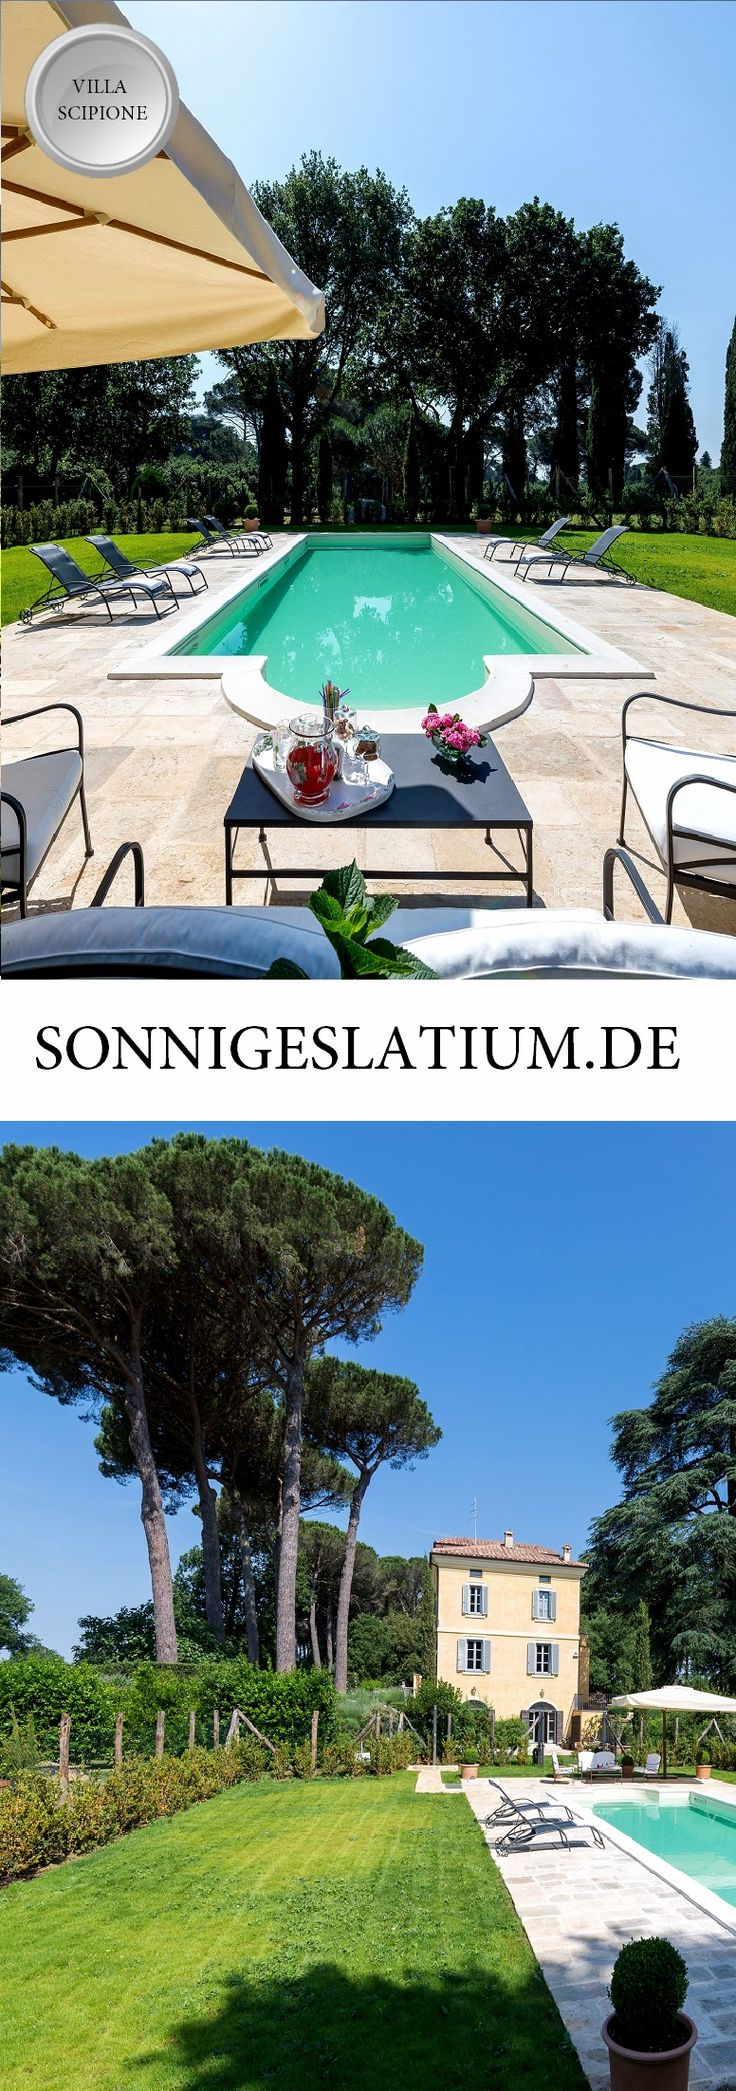 Villa Scipione   Italy, Rome, Latium, 4 bedrooms, Private Pool   Explore Rome with this historical manor house with its very own private park and a 20 hectare estate. #latiumluxusvilla #romeholidayrental #romeholidayhomes #sonnigeslatiumvillas #ferienhäuserlatiummitpool #ferienhäuserlatium #latiumferienhauser #latiumferienhausmitpool #sonnigeslatium #ferienwohnung #urlaub #latiumvillen #traumvillen #traumvillenlatium #villarentalinrome #romevillas